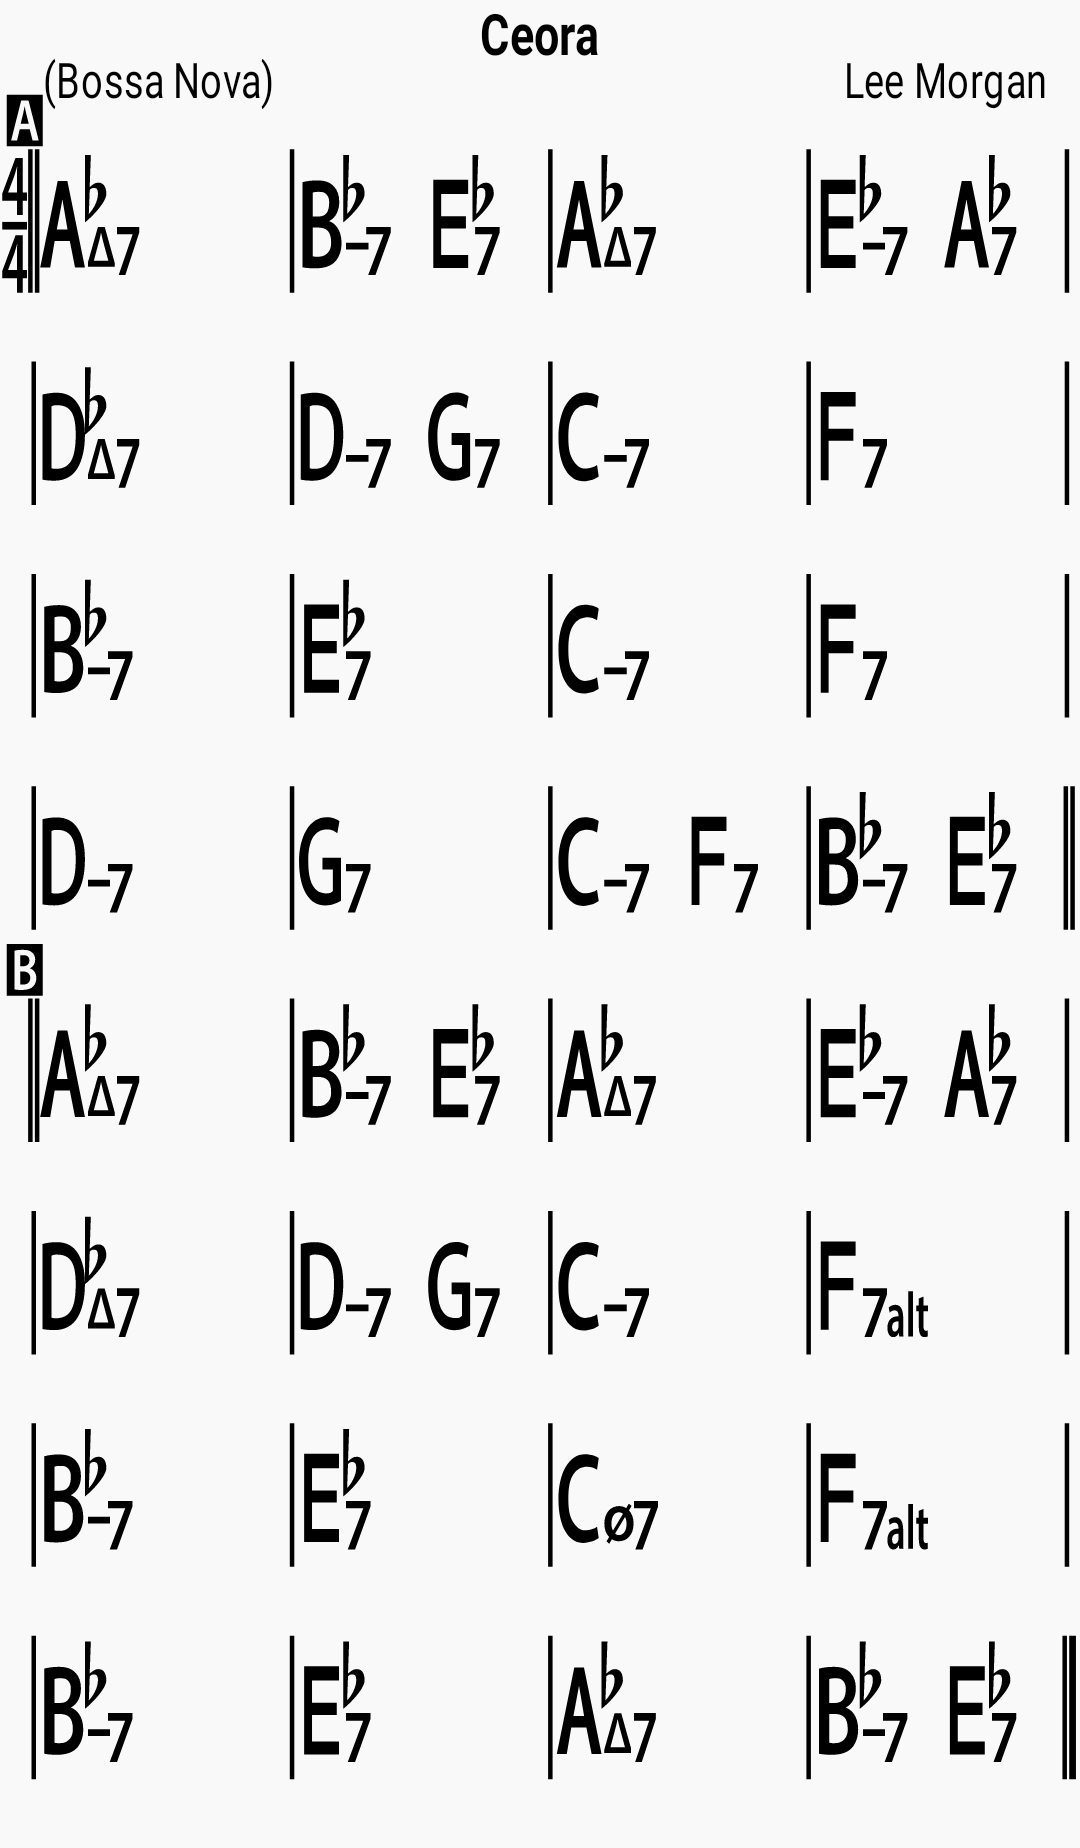 Chord chart for the jazz standard Ceora